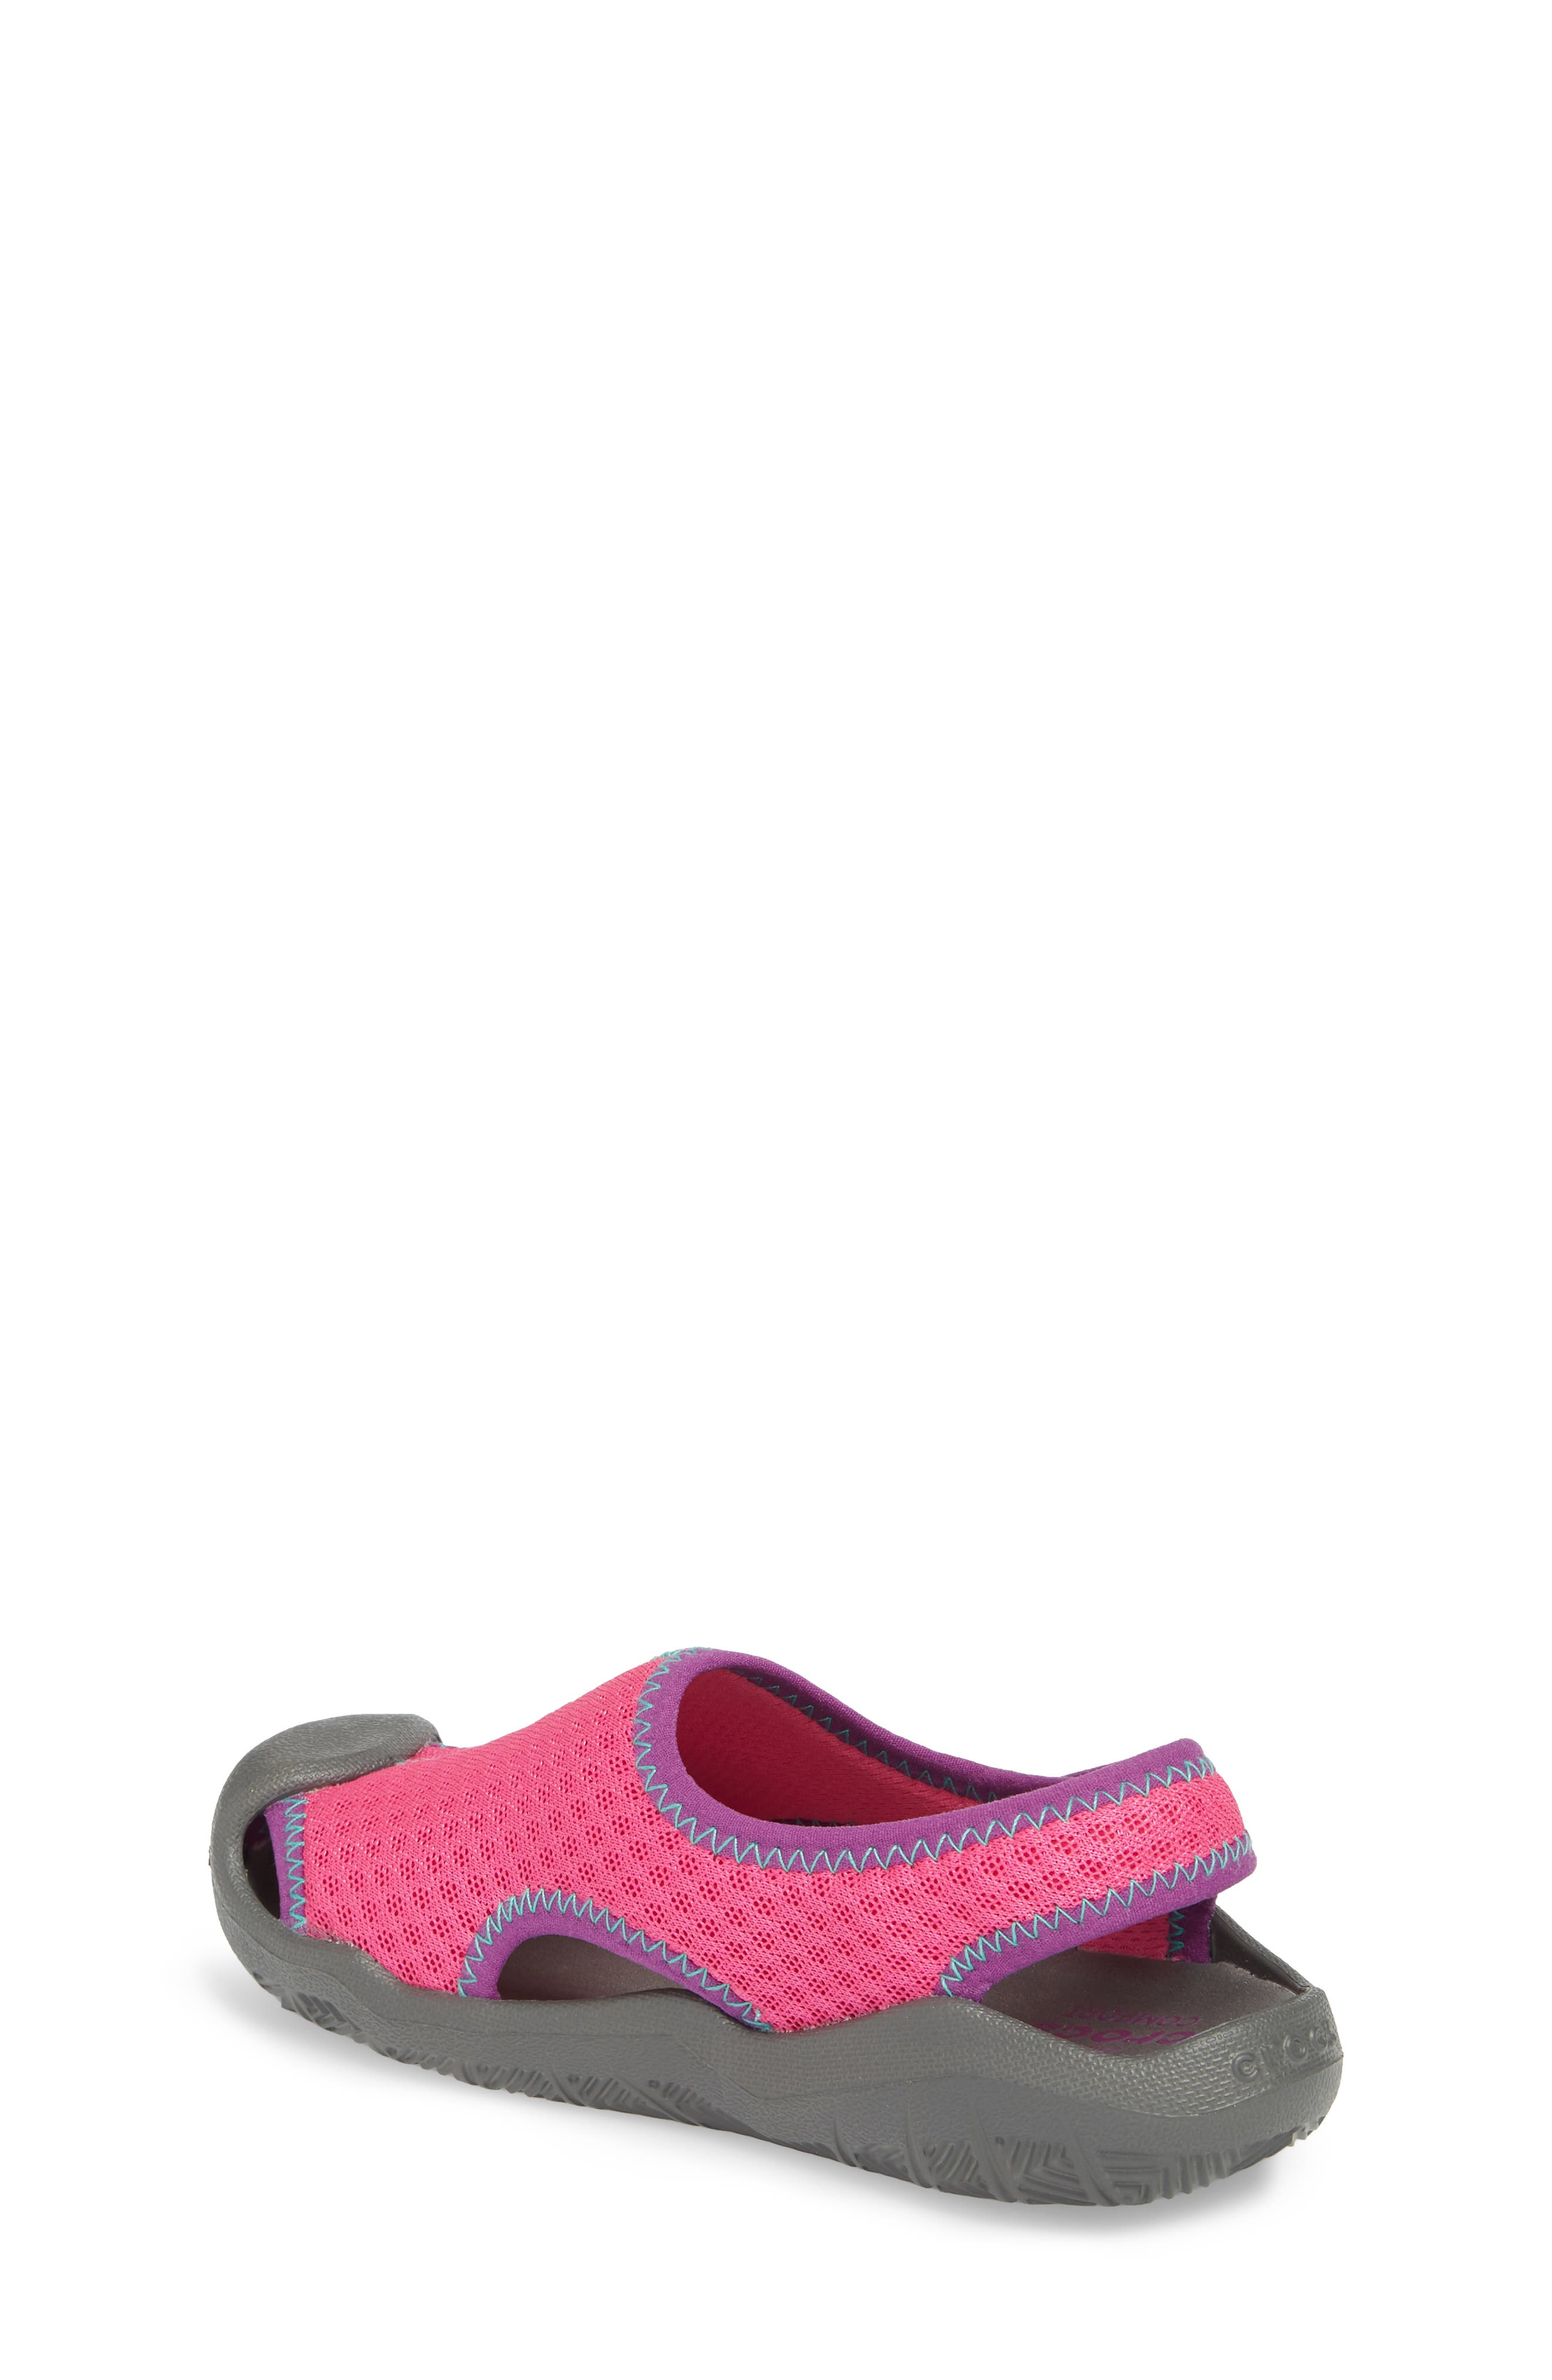 Swiftwater Sandal,                             Alternate thumbnail 11, color,